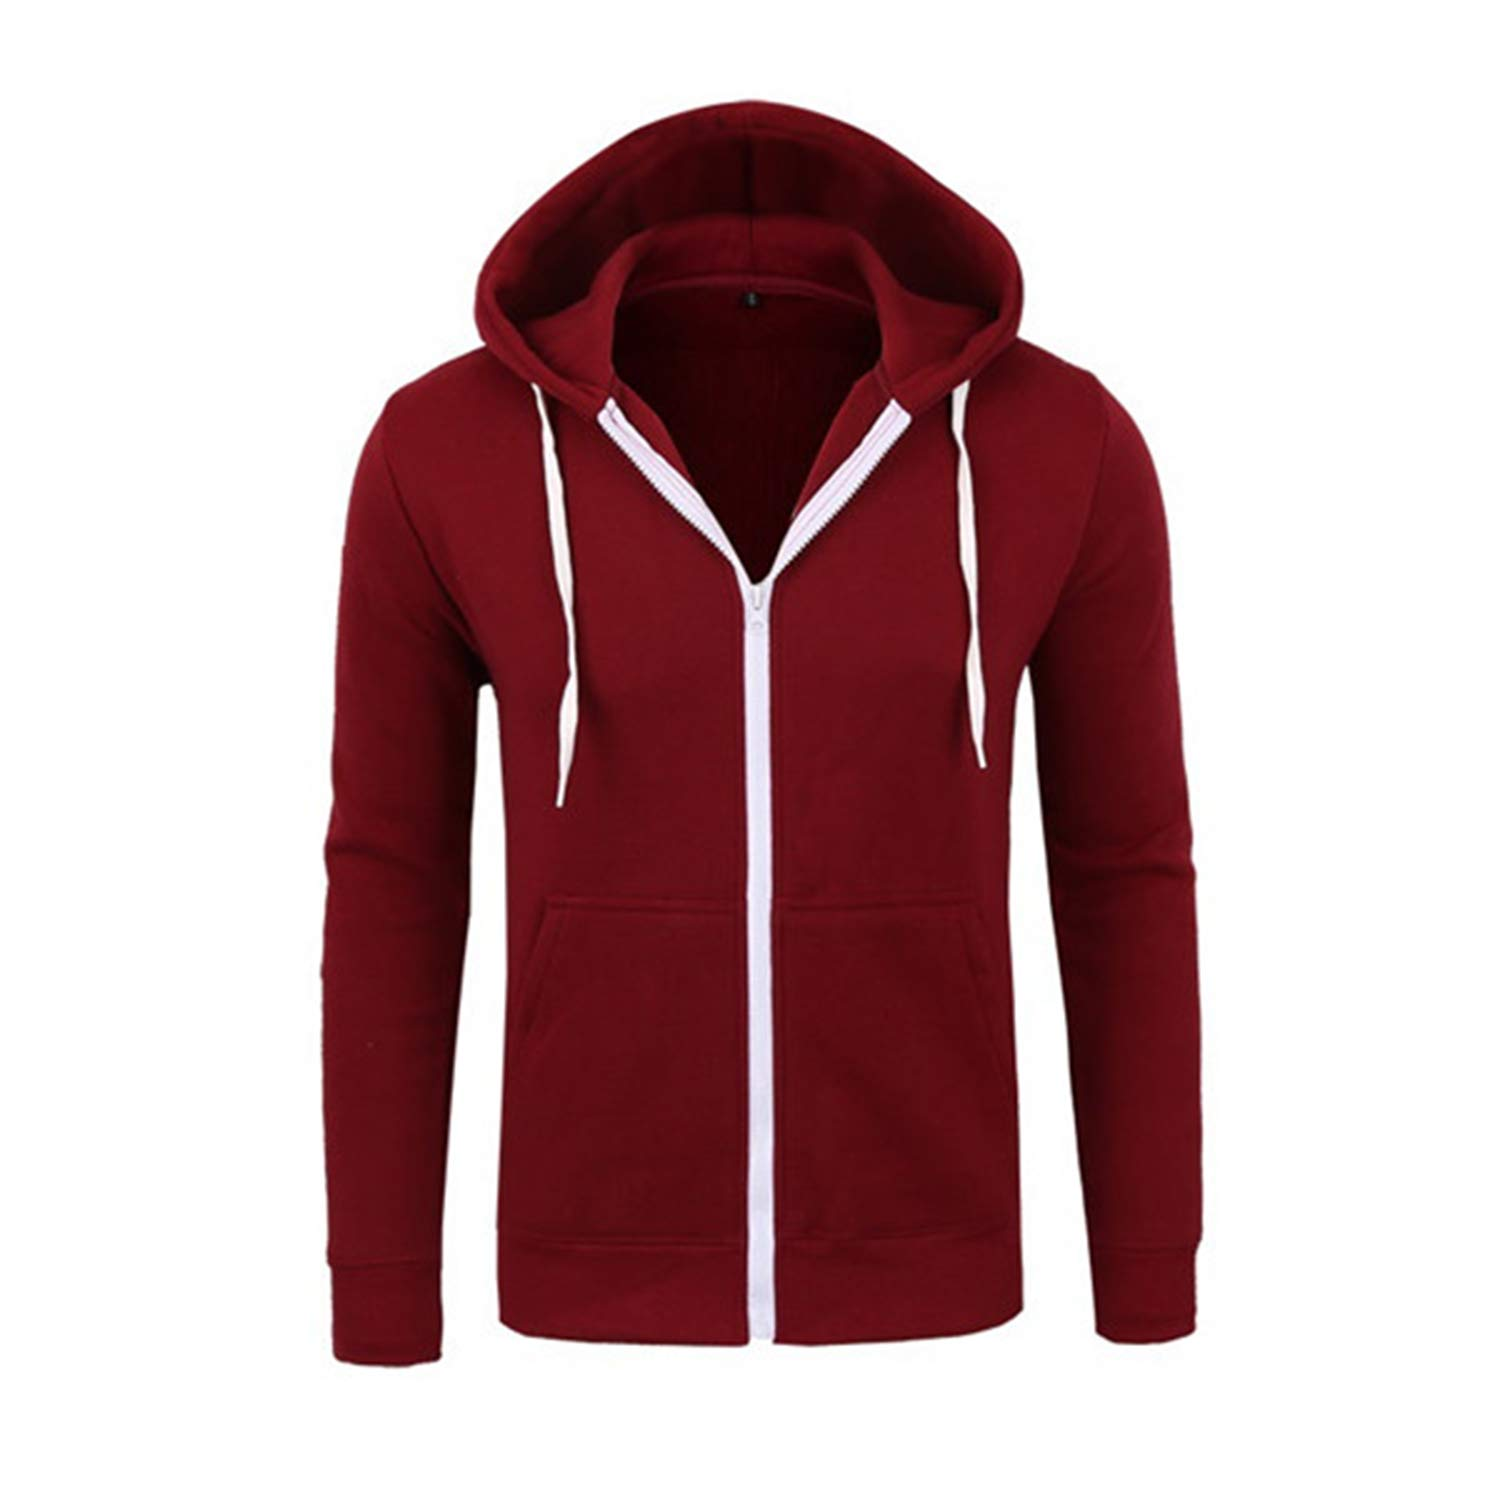 Spring Hoodies Men Solid Zipper Sweatshirts Slim Fit Sportswear Tracksuit